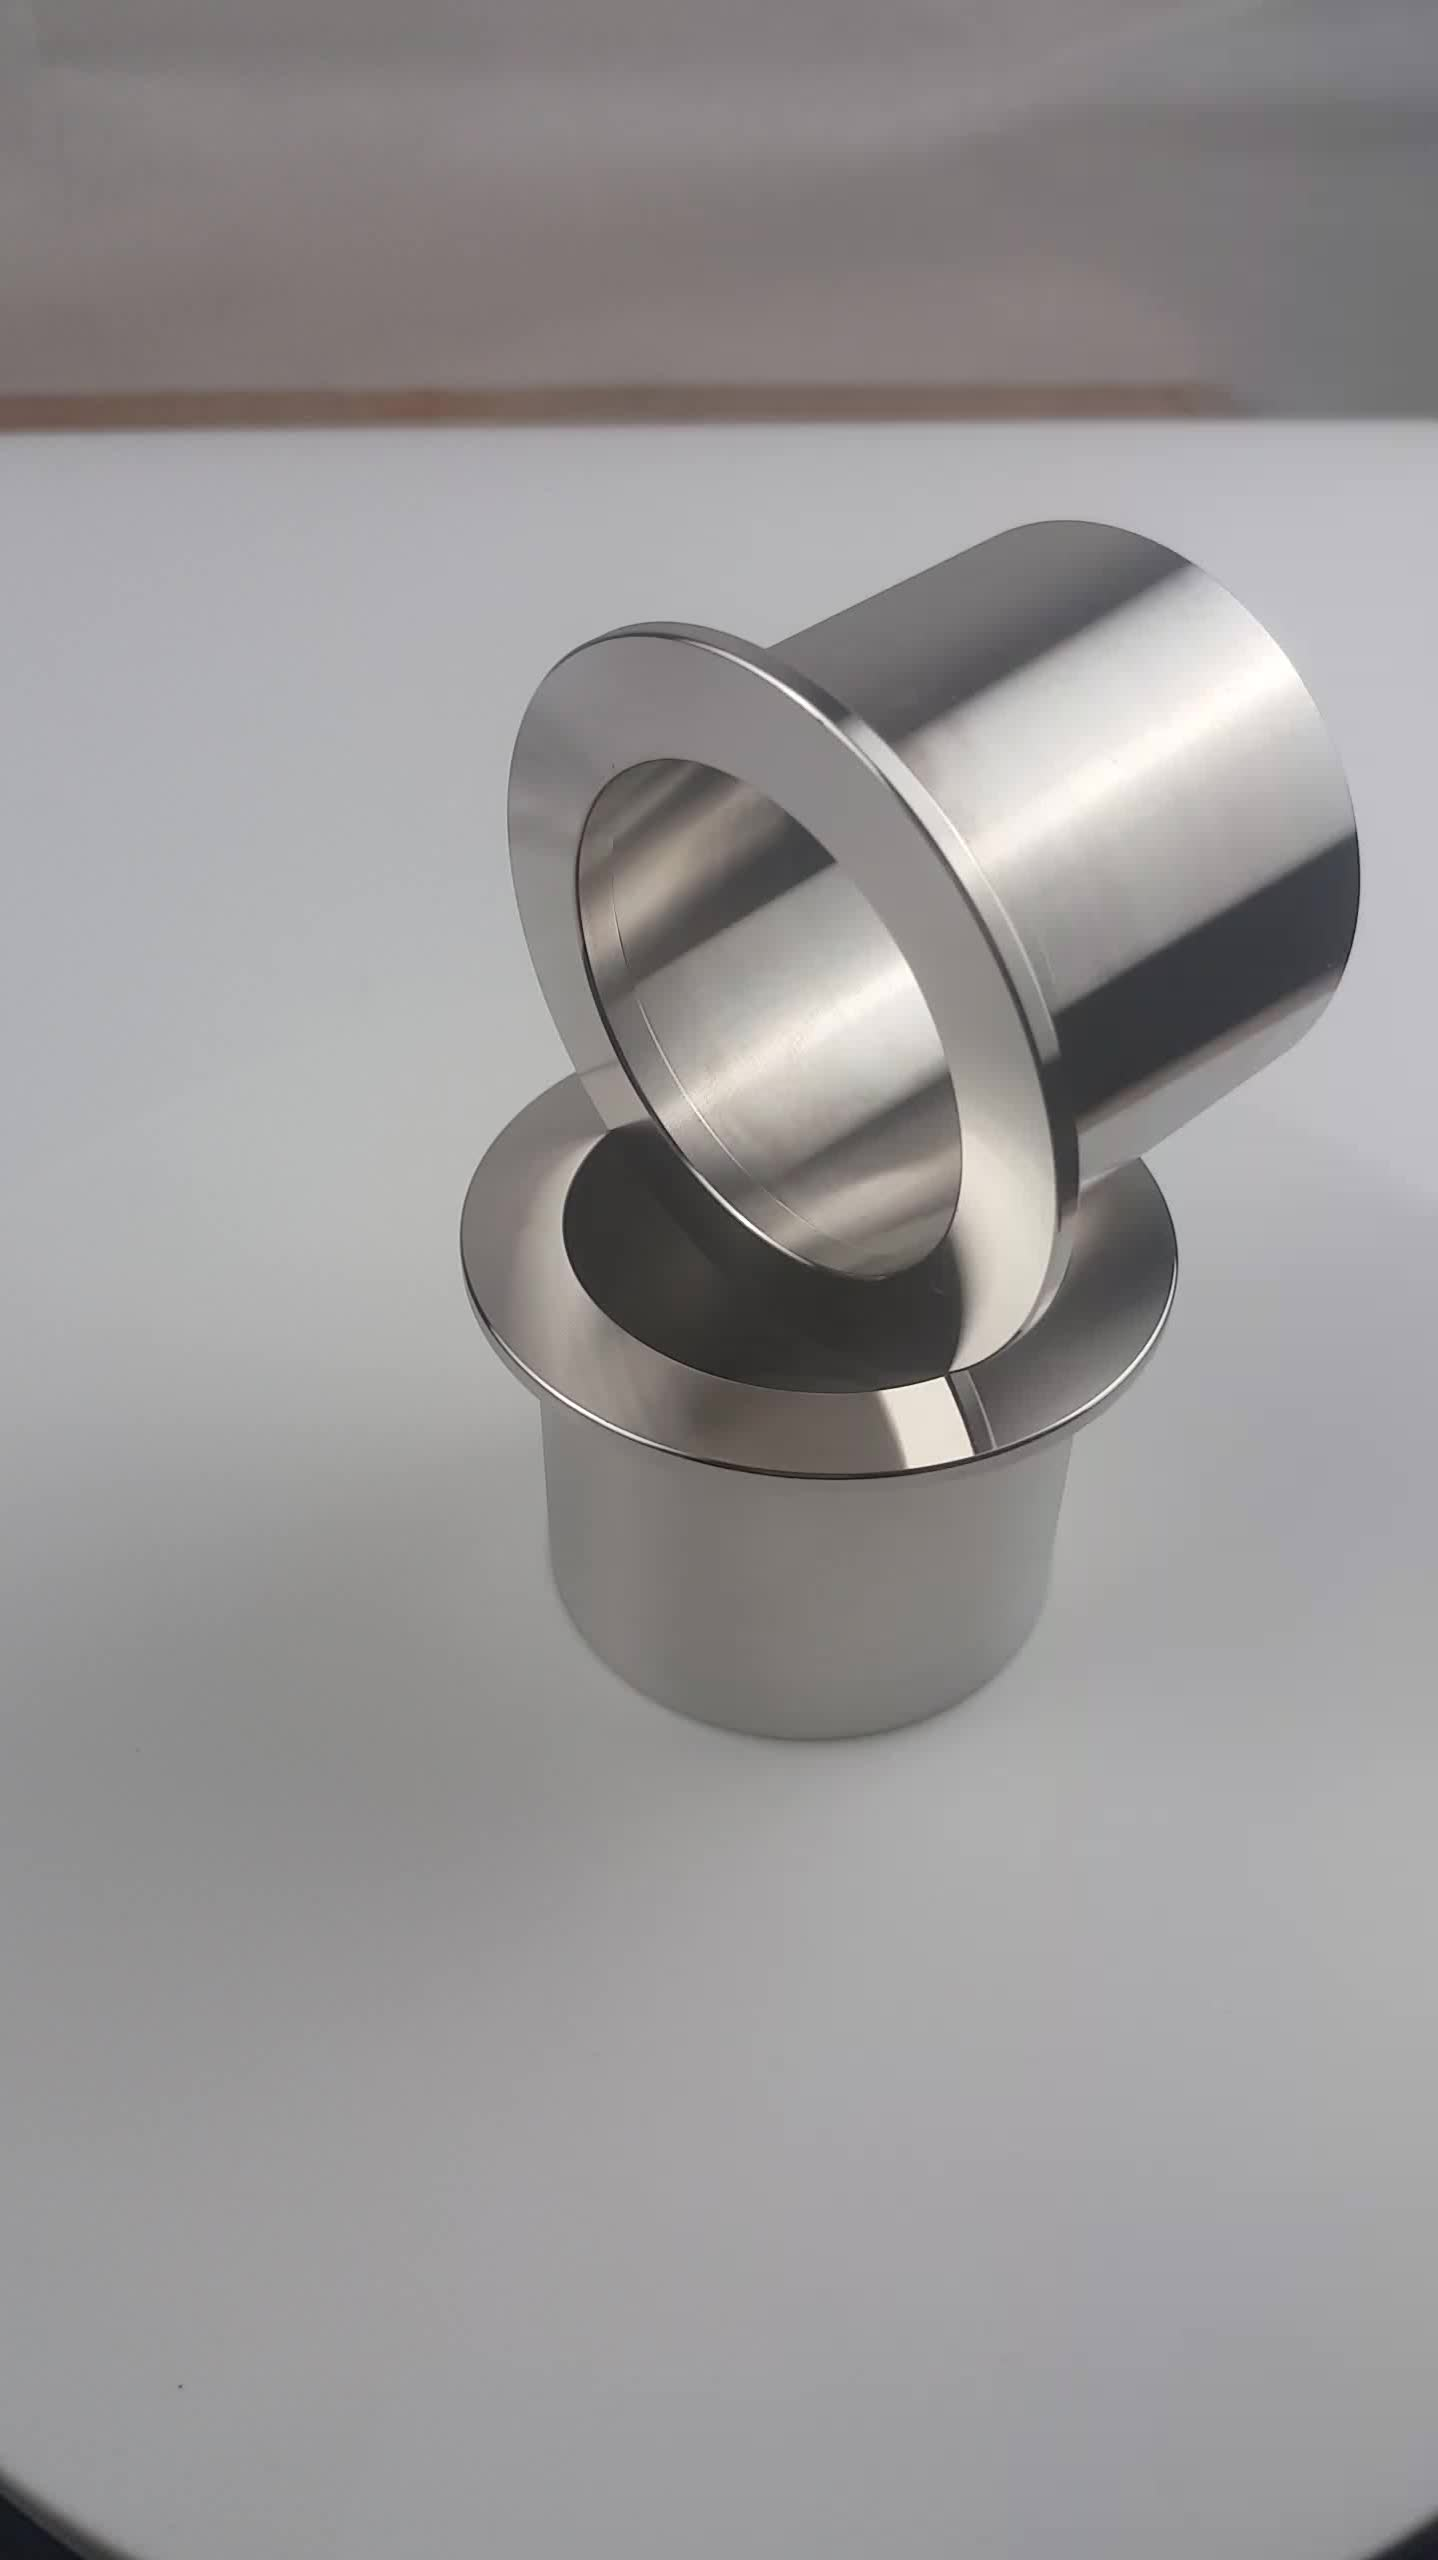 KF50*20 KF50*30 KF50*40 KF50*50 stainless steel 304 vacuum weld fitting Clamp ferrule with half nipple